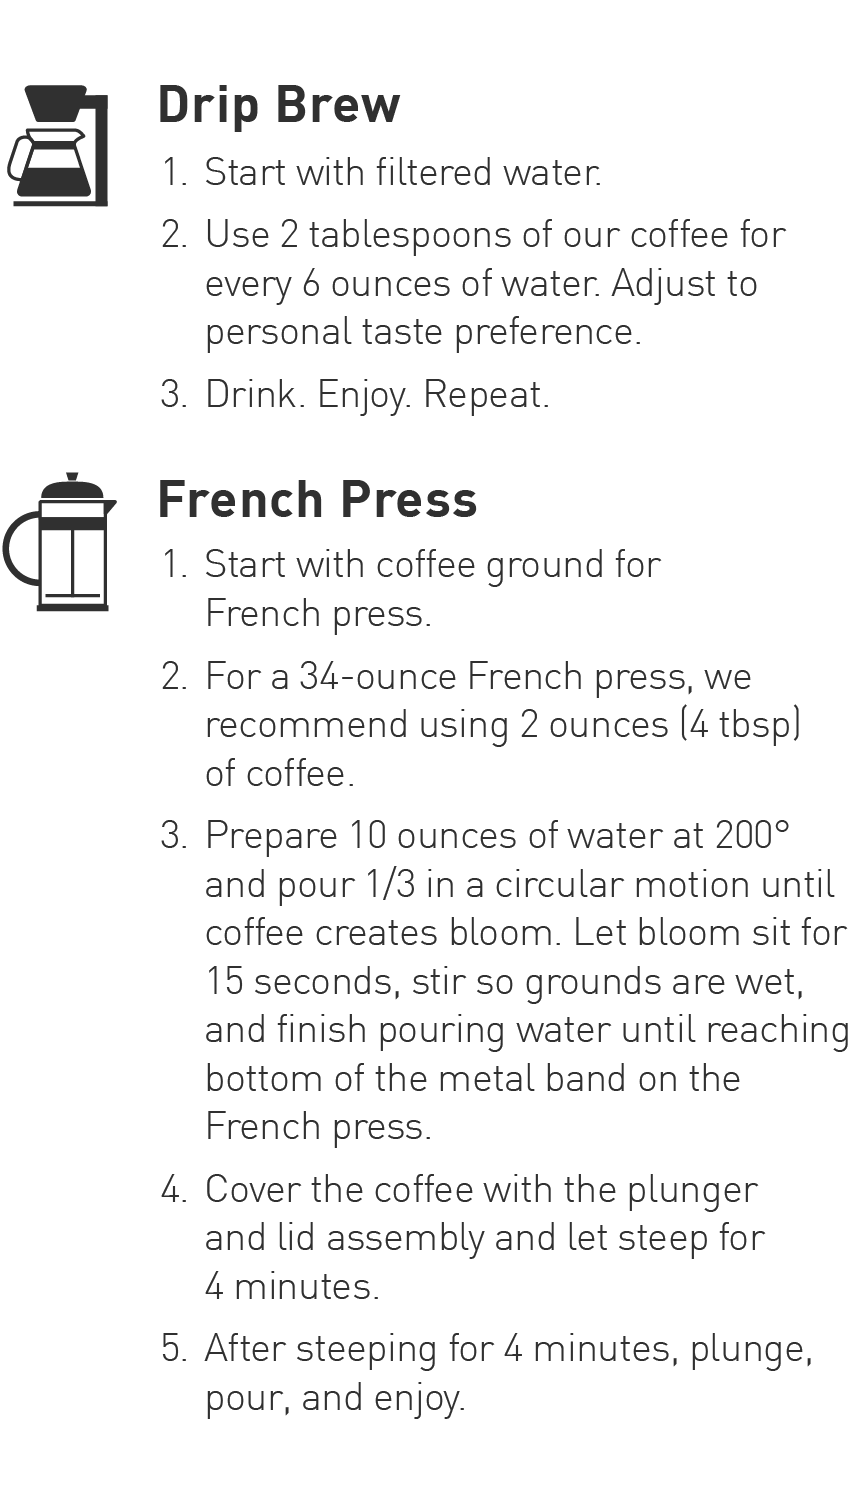 Drip Coffee and French Press Brewing Guide